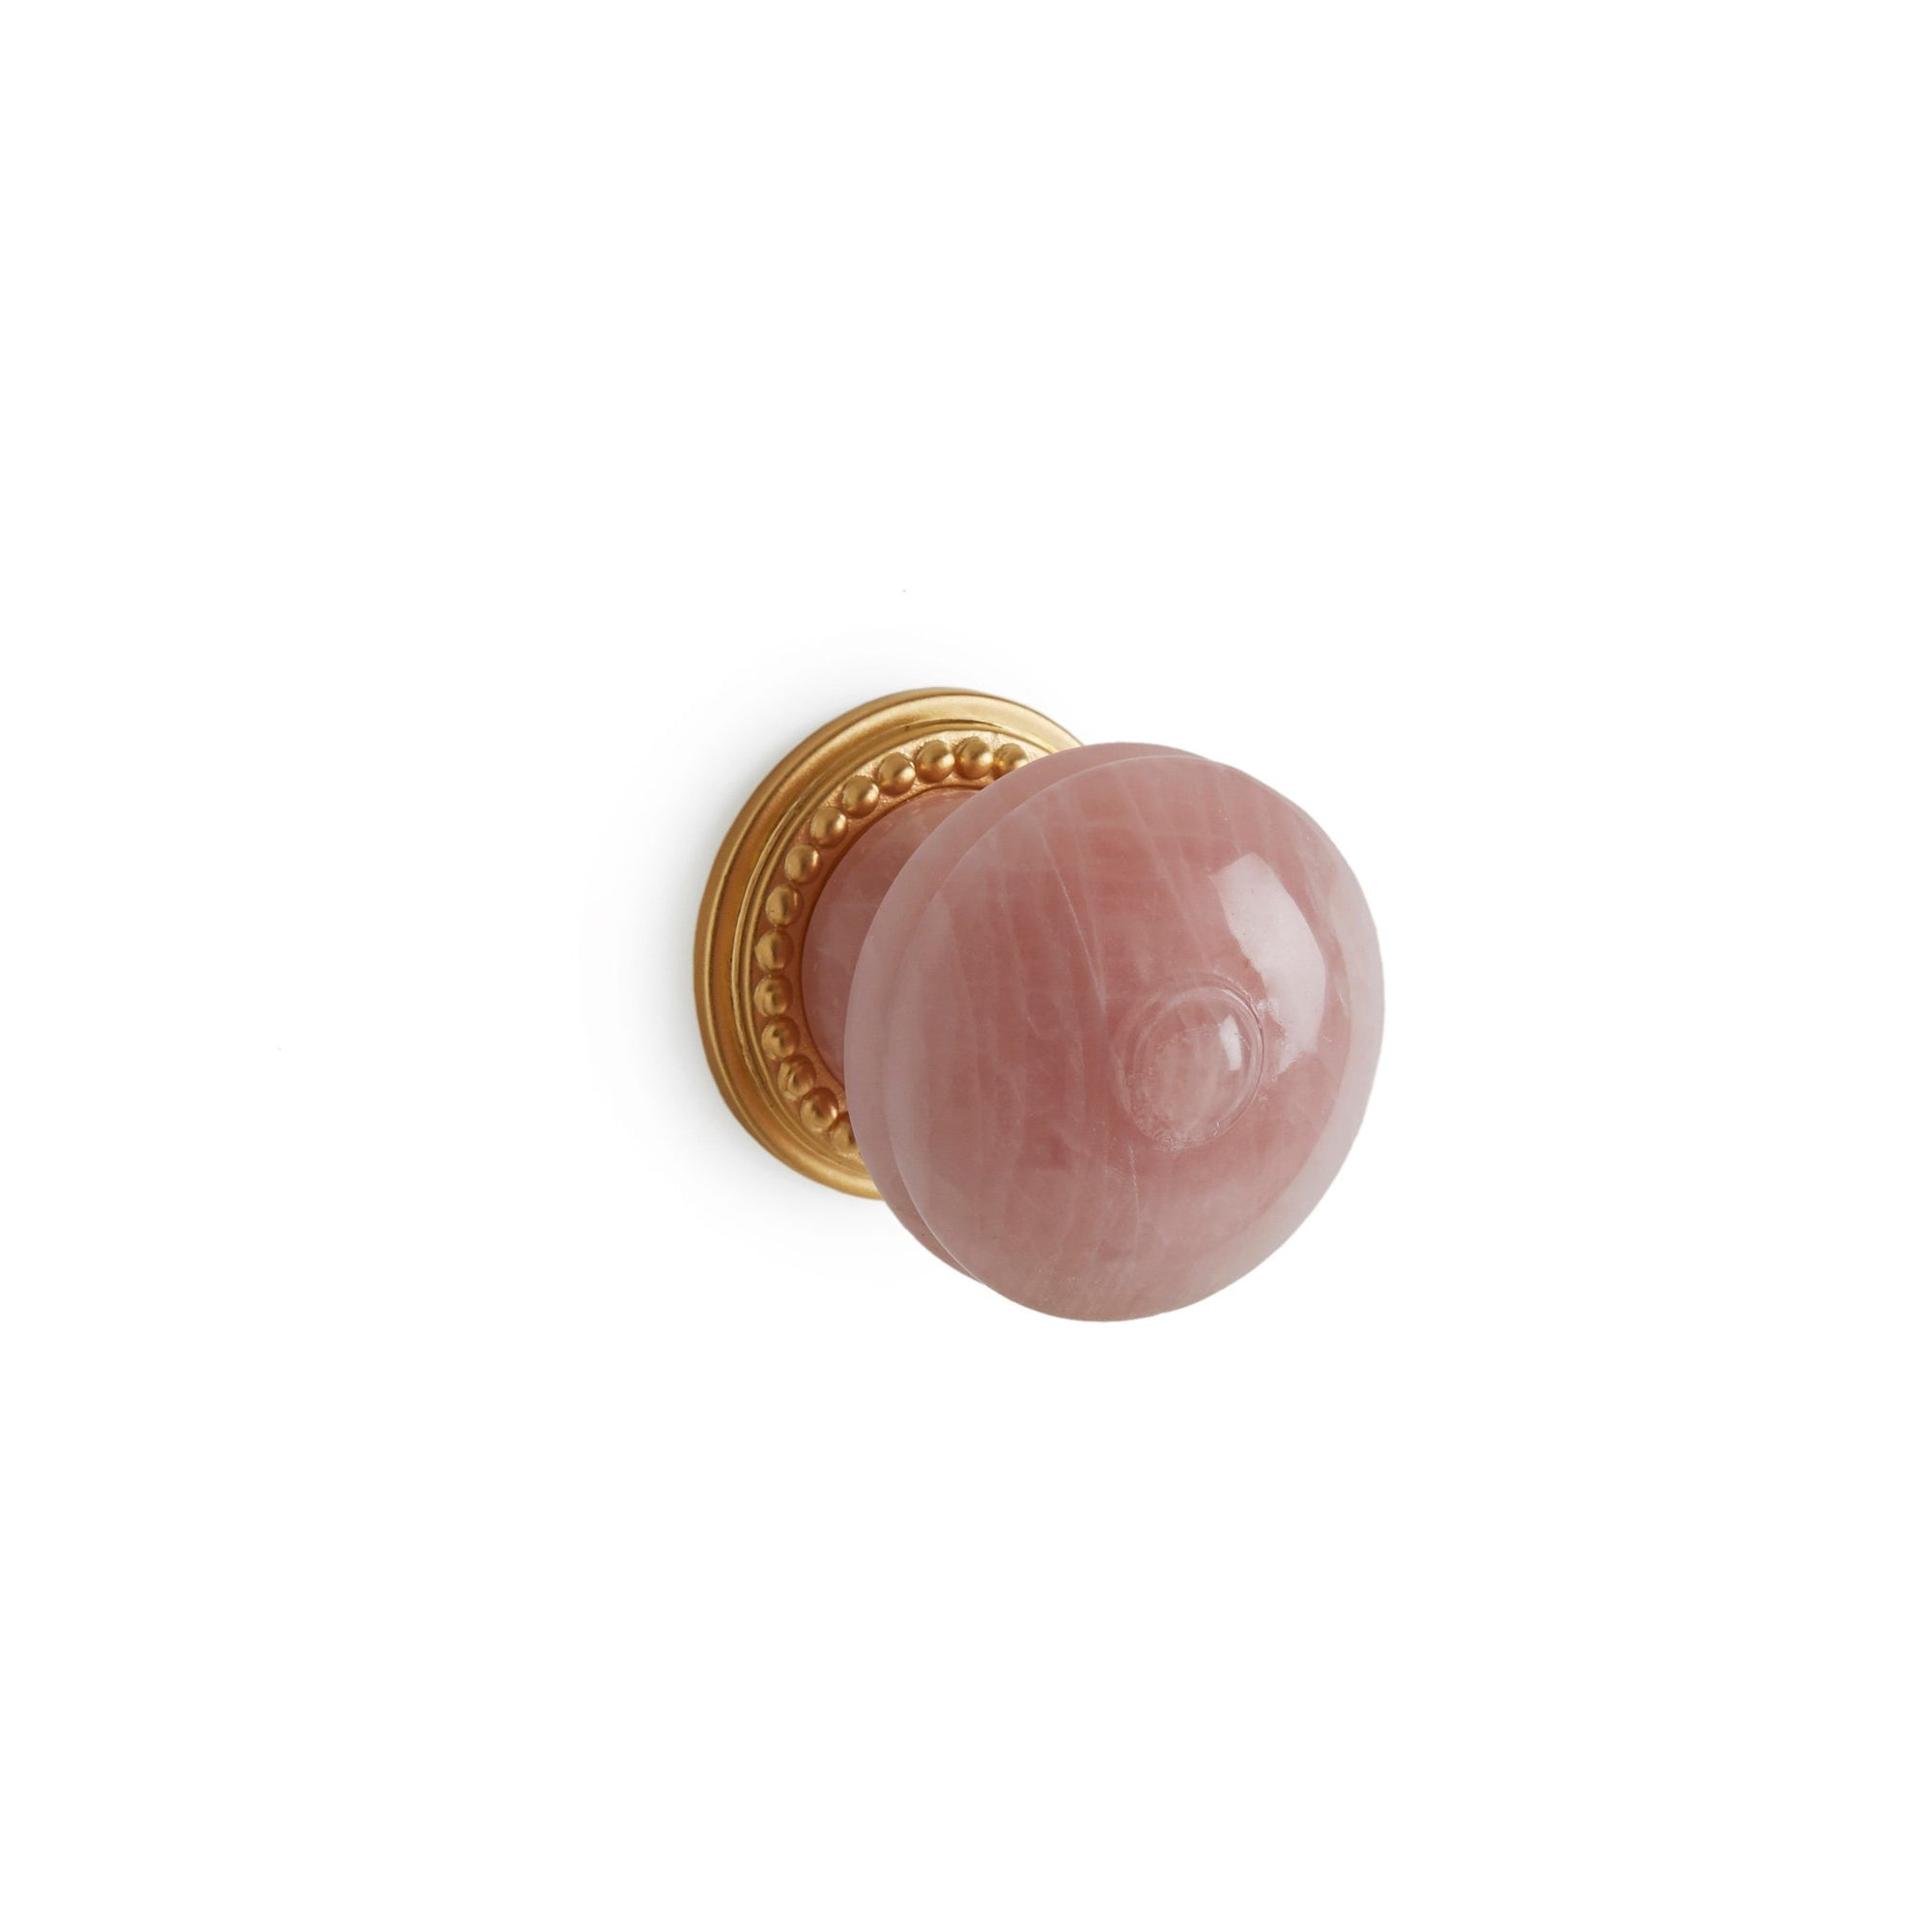 0022-1-RSQU-GP Sherle Wagner International Semiprecious Rose Quartz Bamboo Cabinet & Drawer Knob in Gold Plate metal finish